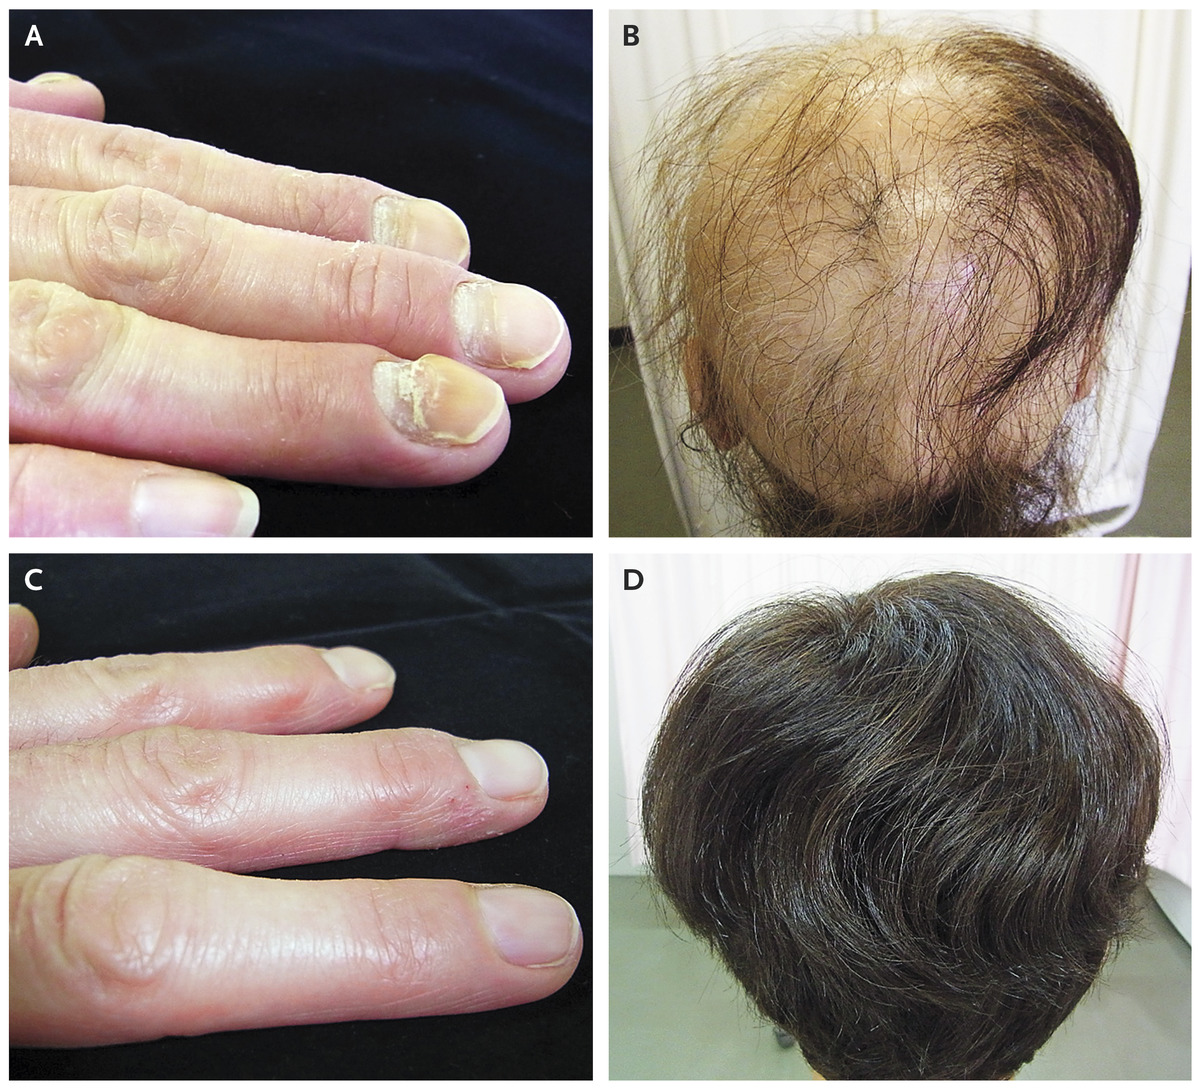 Brittle Nails And Hair Loss In Hypothyroidism Physical